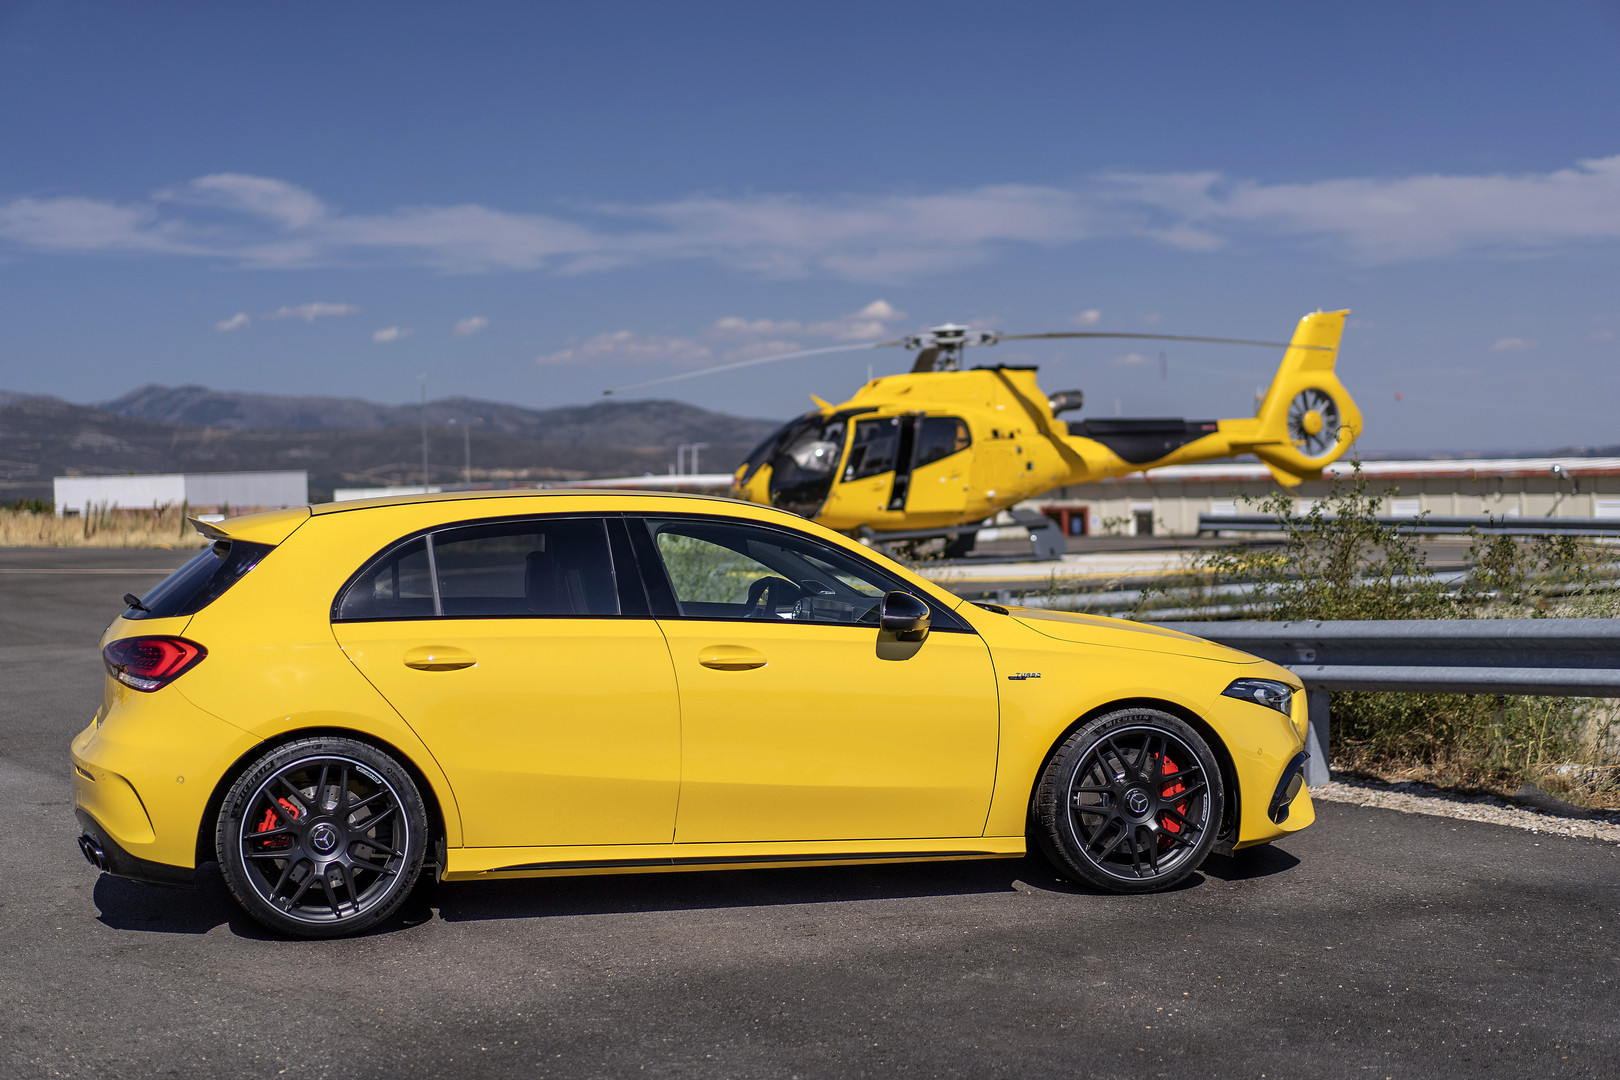 2020 A45 S AMG Price